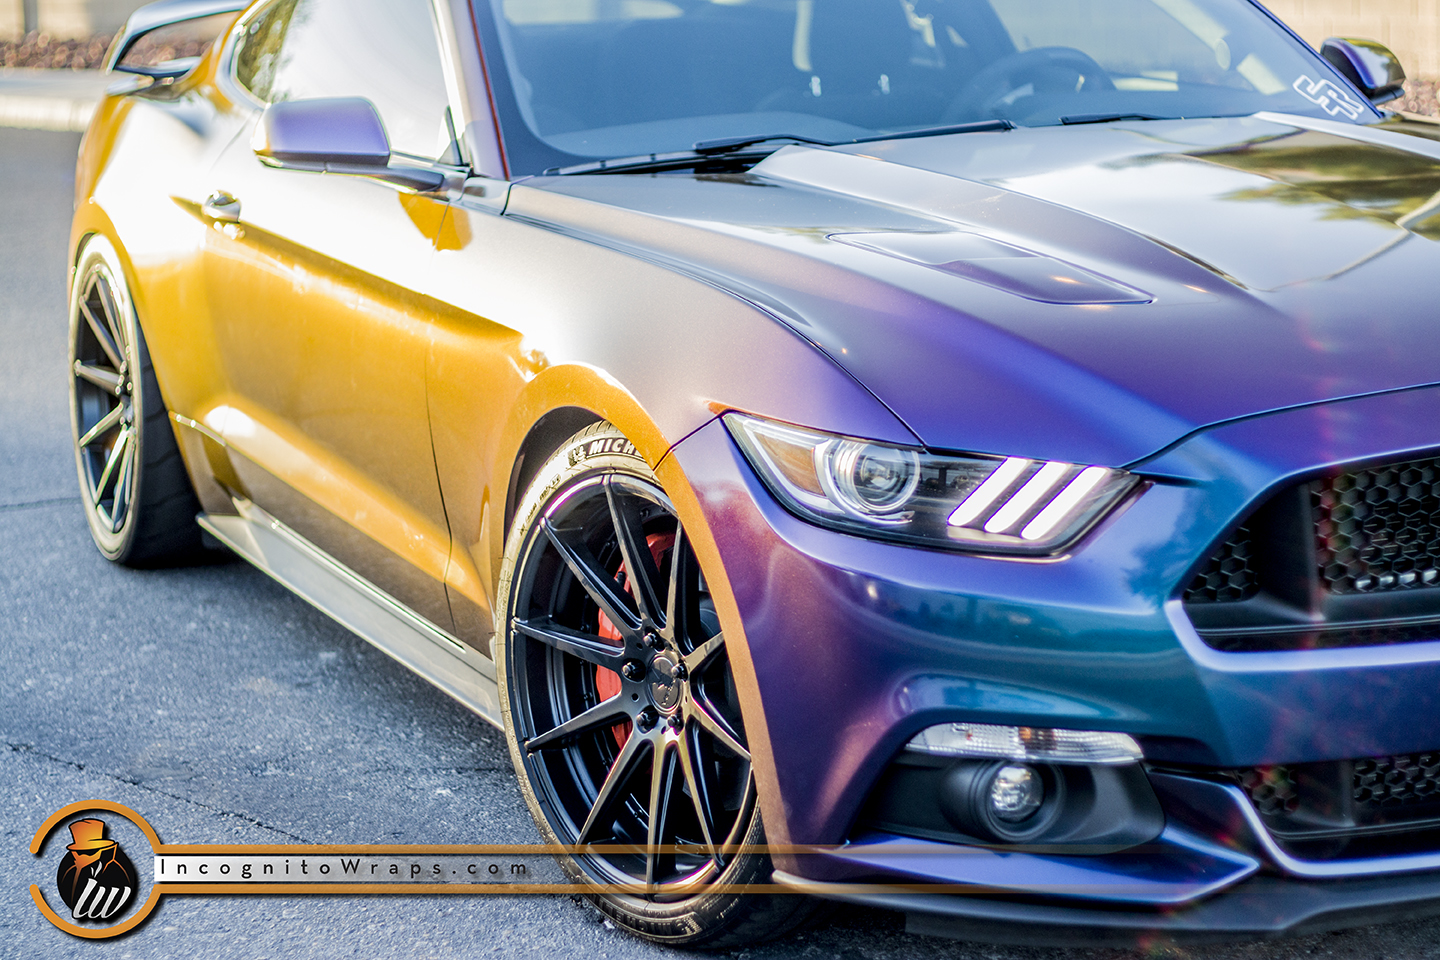 Ford Mustang GT - Rushing Riptide